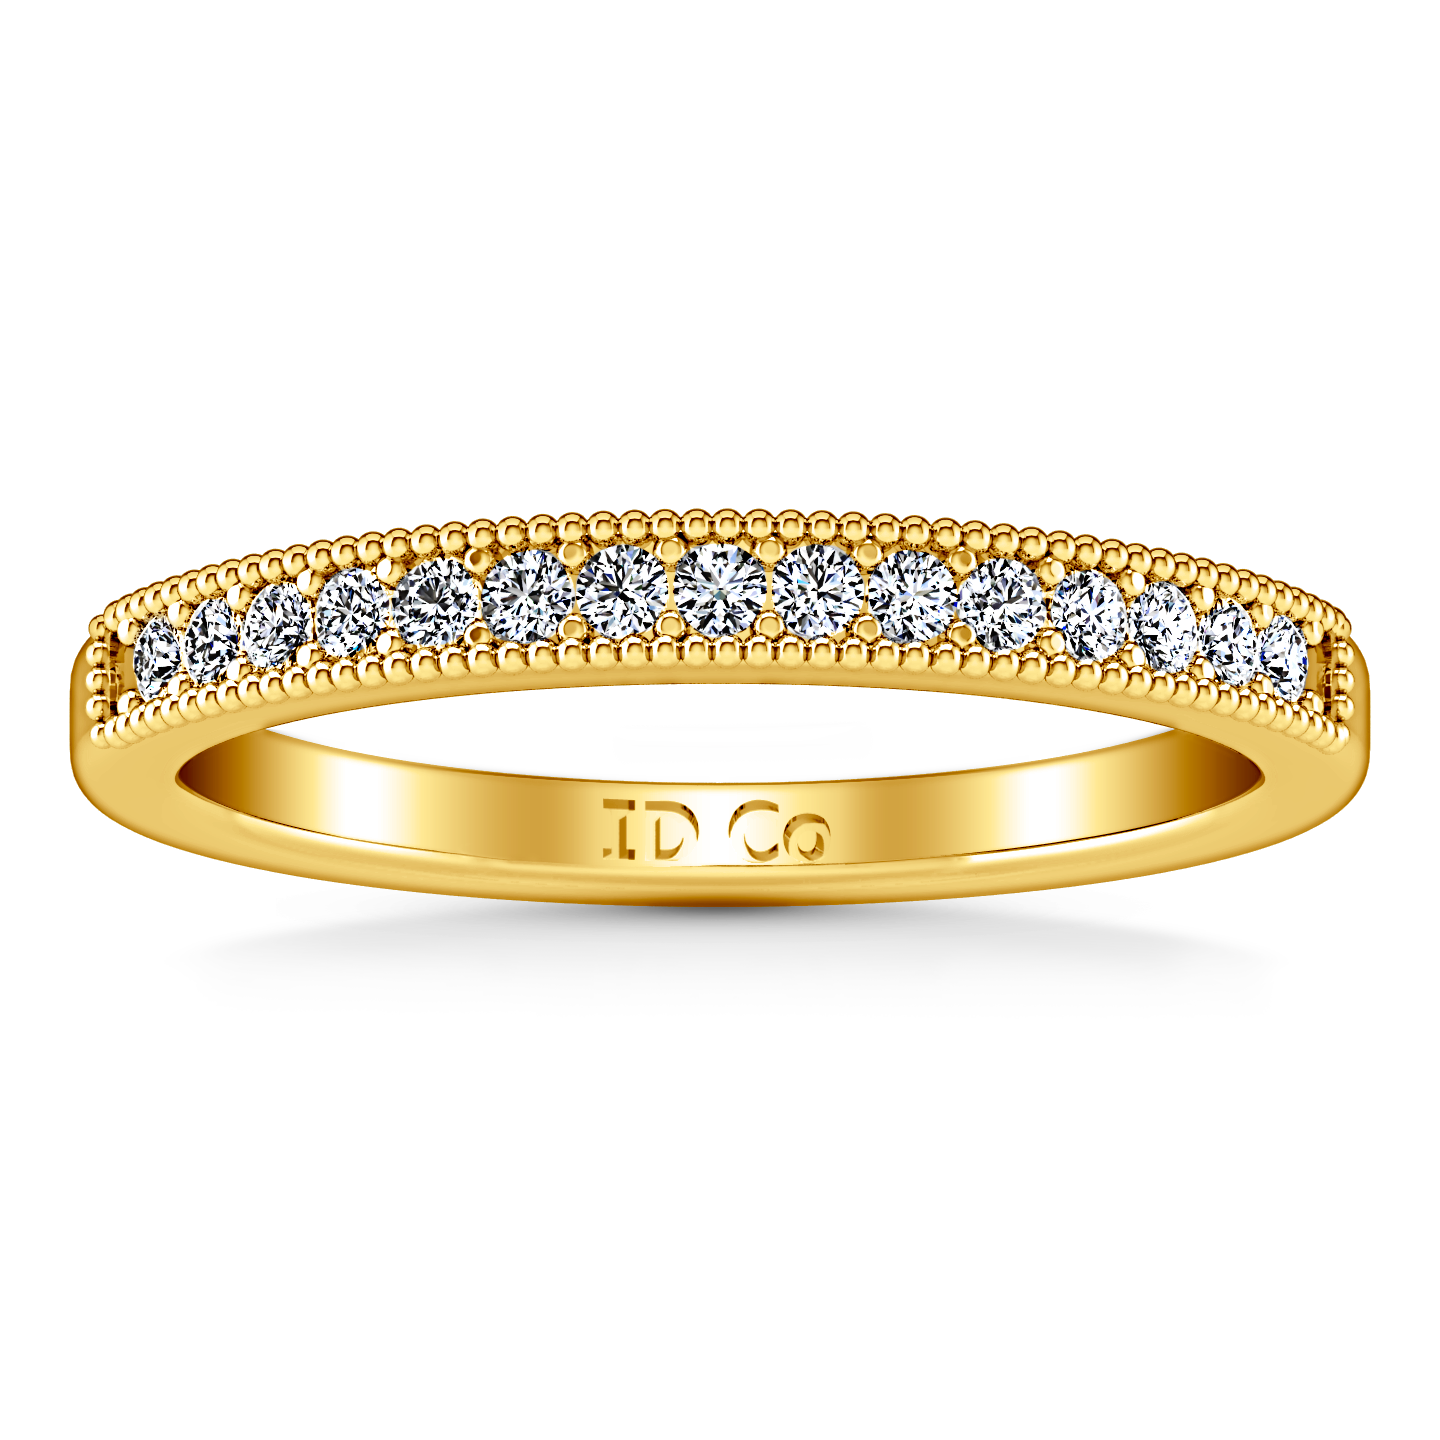 diamond wedding band tiffany 0 45 cts 14k yellow gold – imagine